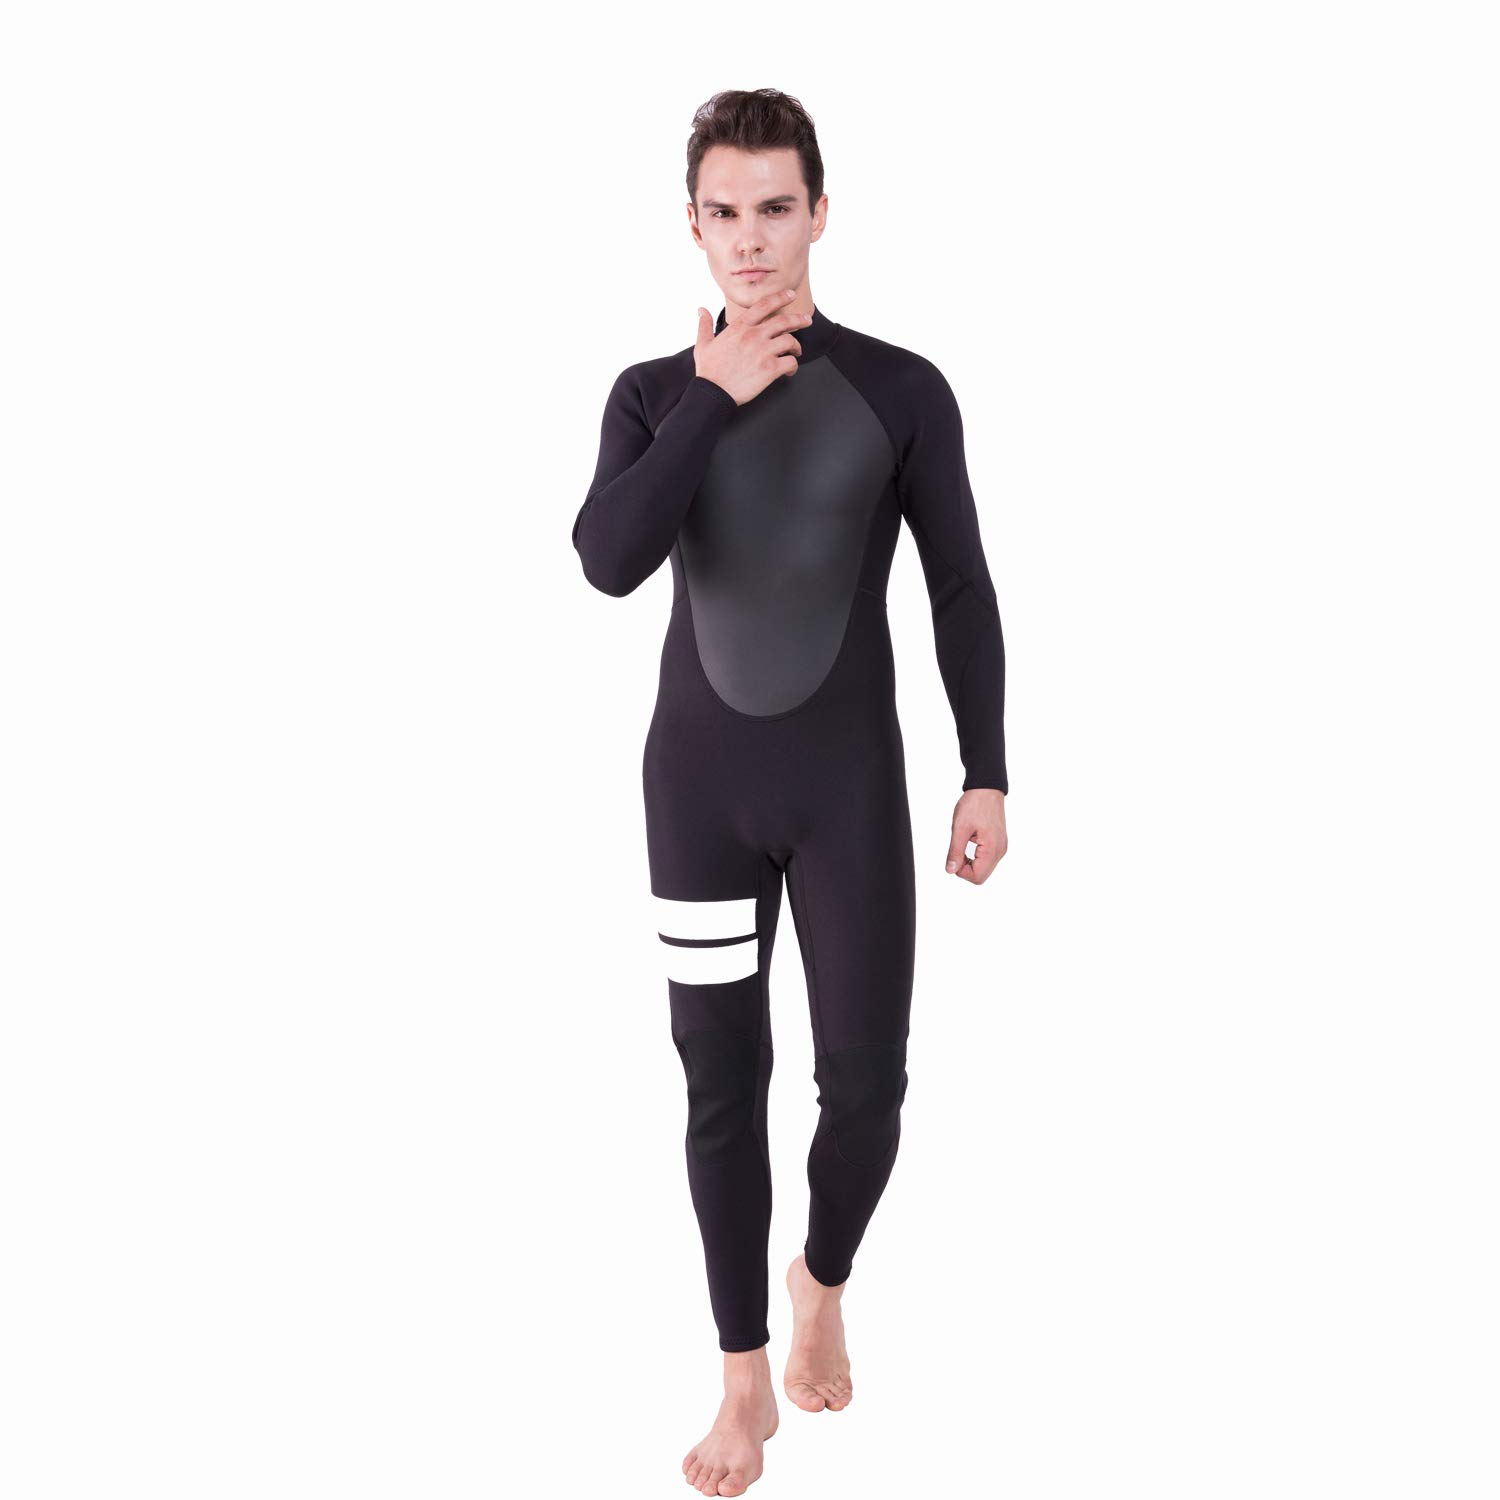 Realon Wetsuit Men Full 2mm Surfing Suit Diving Snorkeling Swimming Jumpsuit (2mm Black, Medium) by Realon (Image #7)